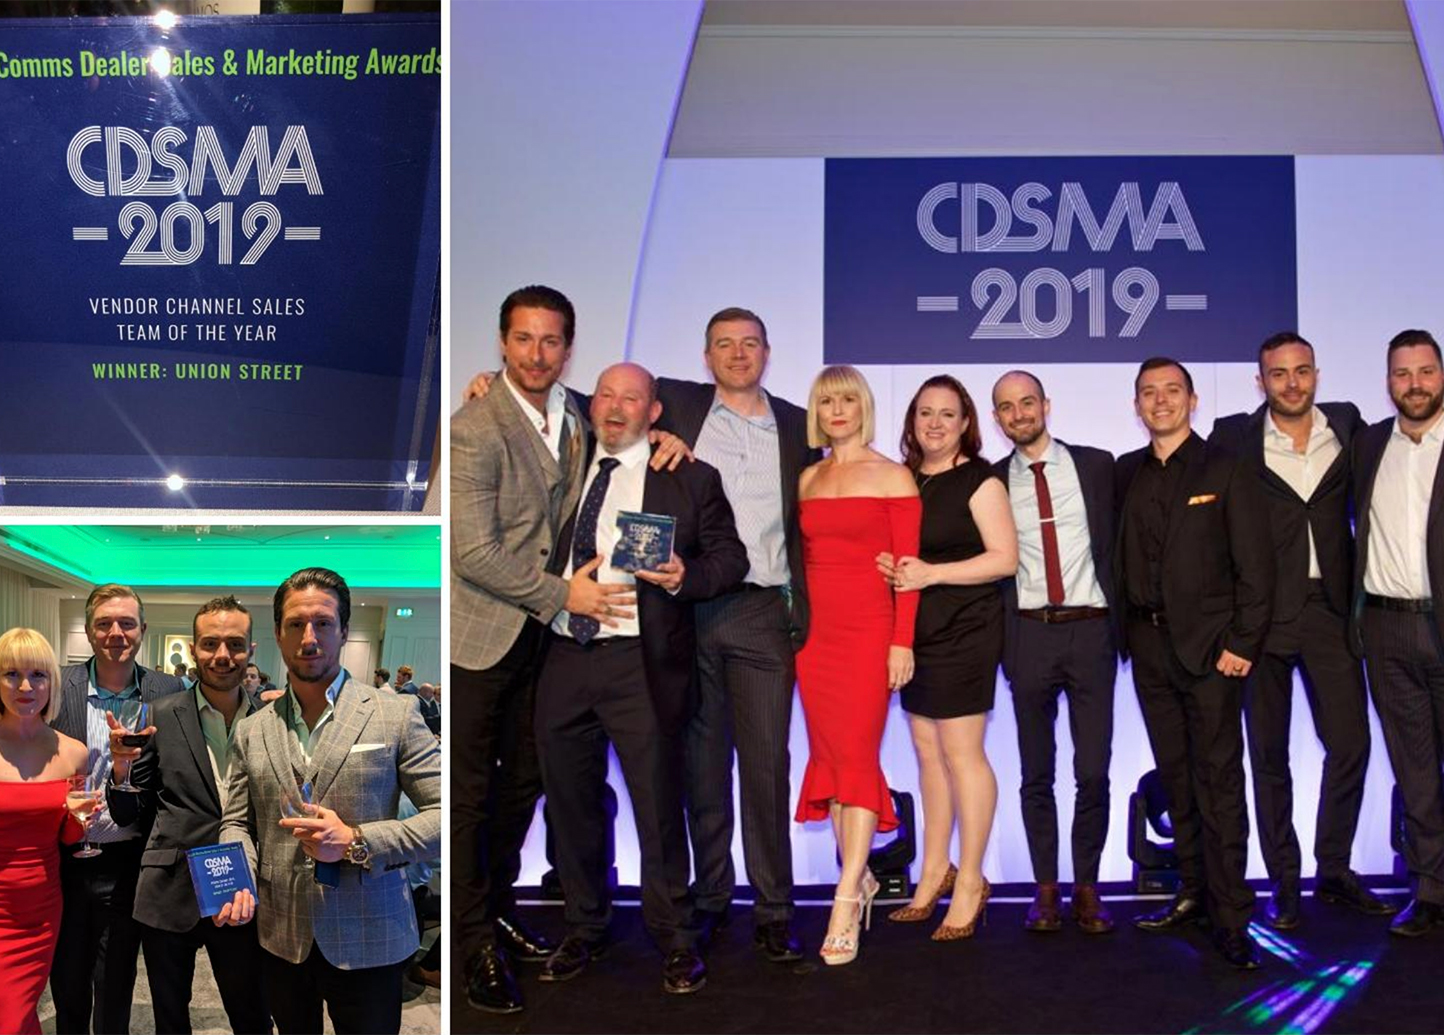 Union Street team at the CDSMA Awards 2019